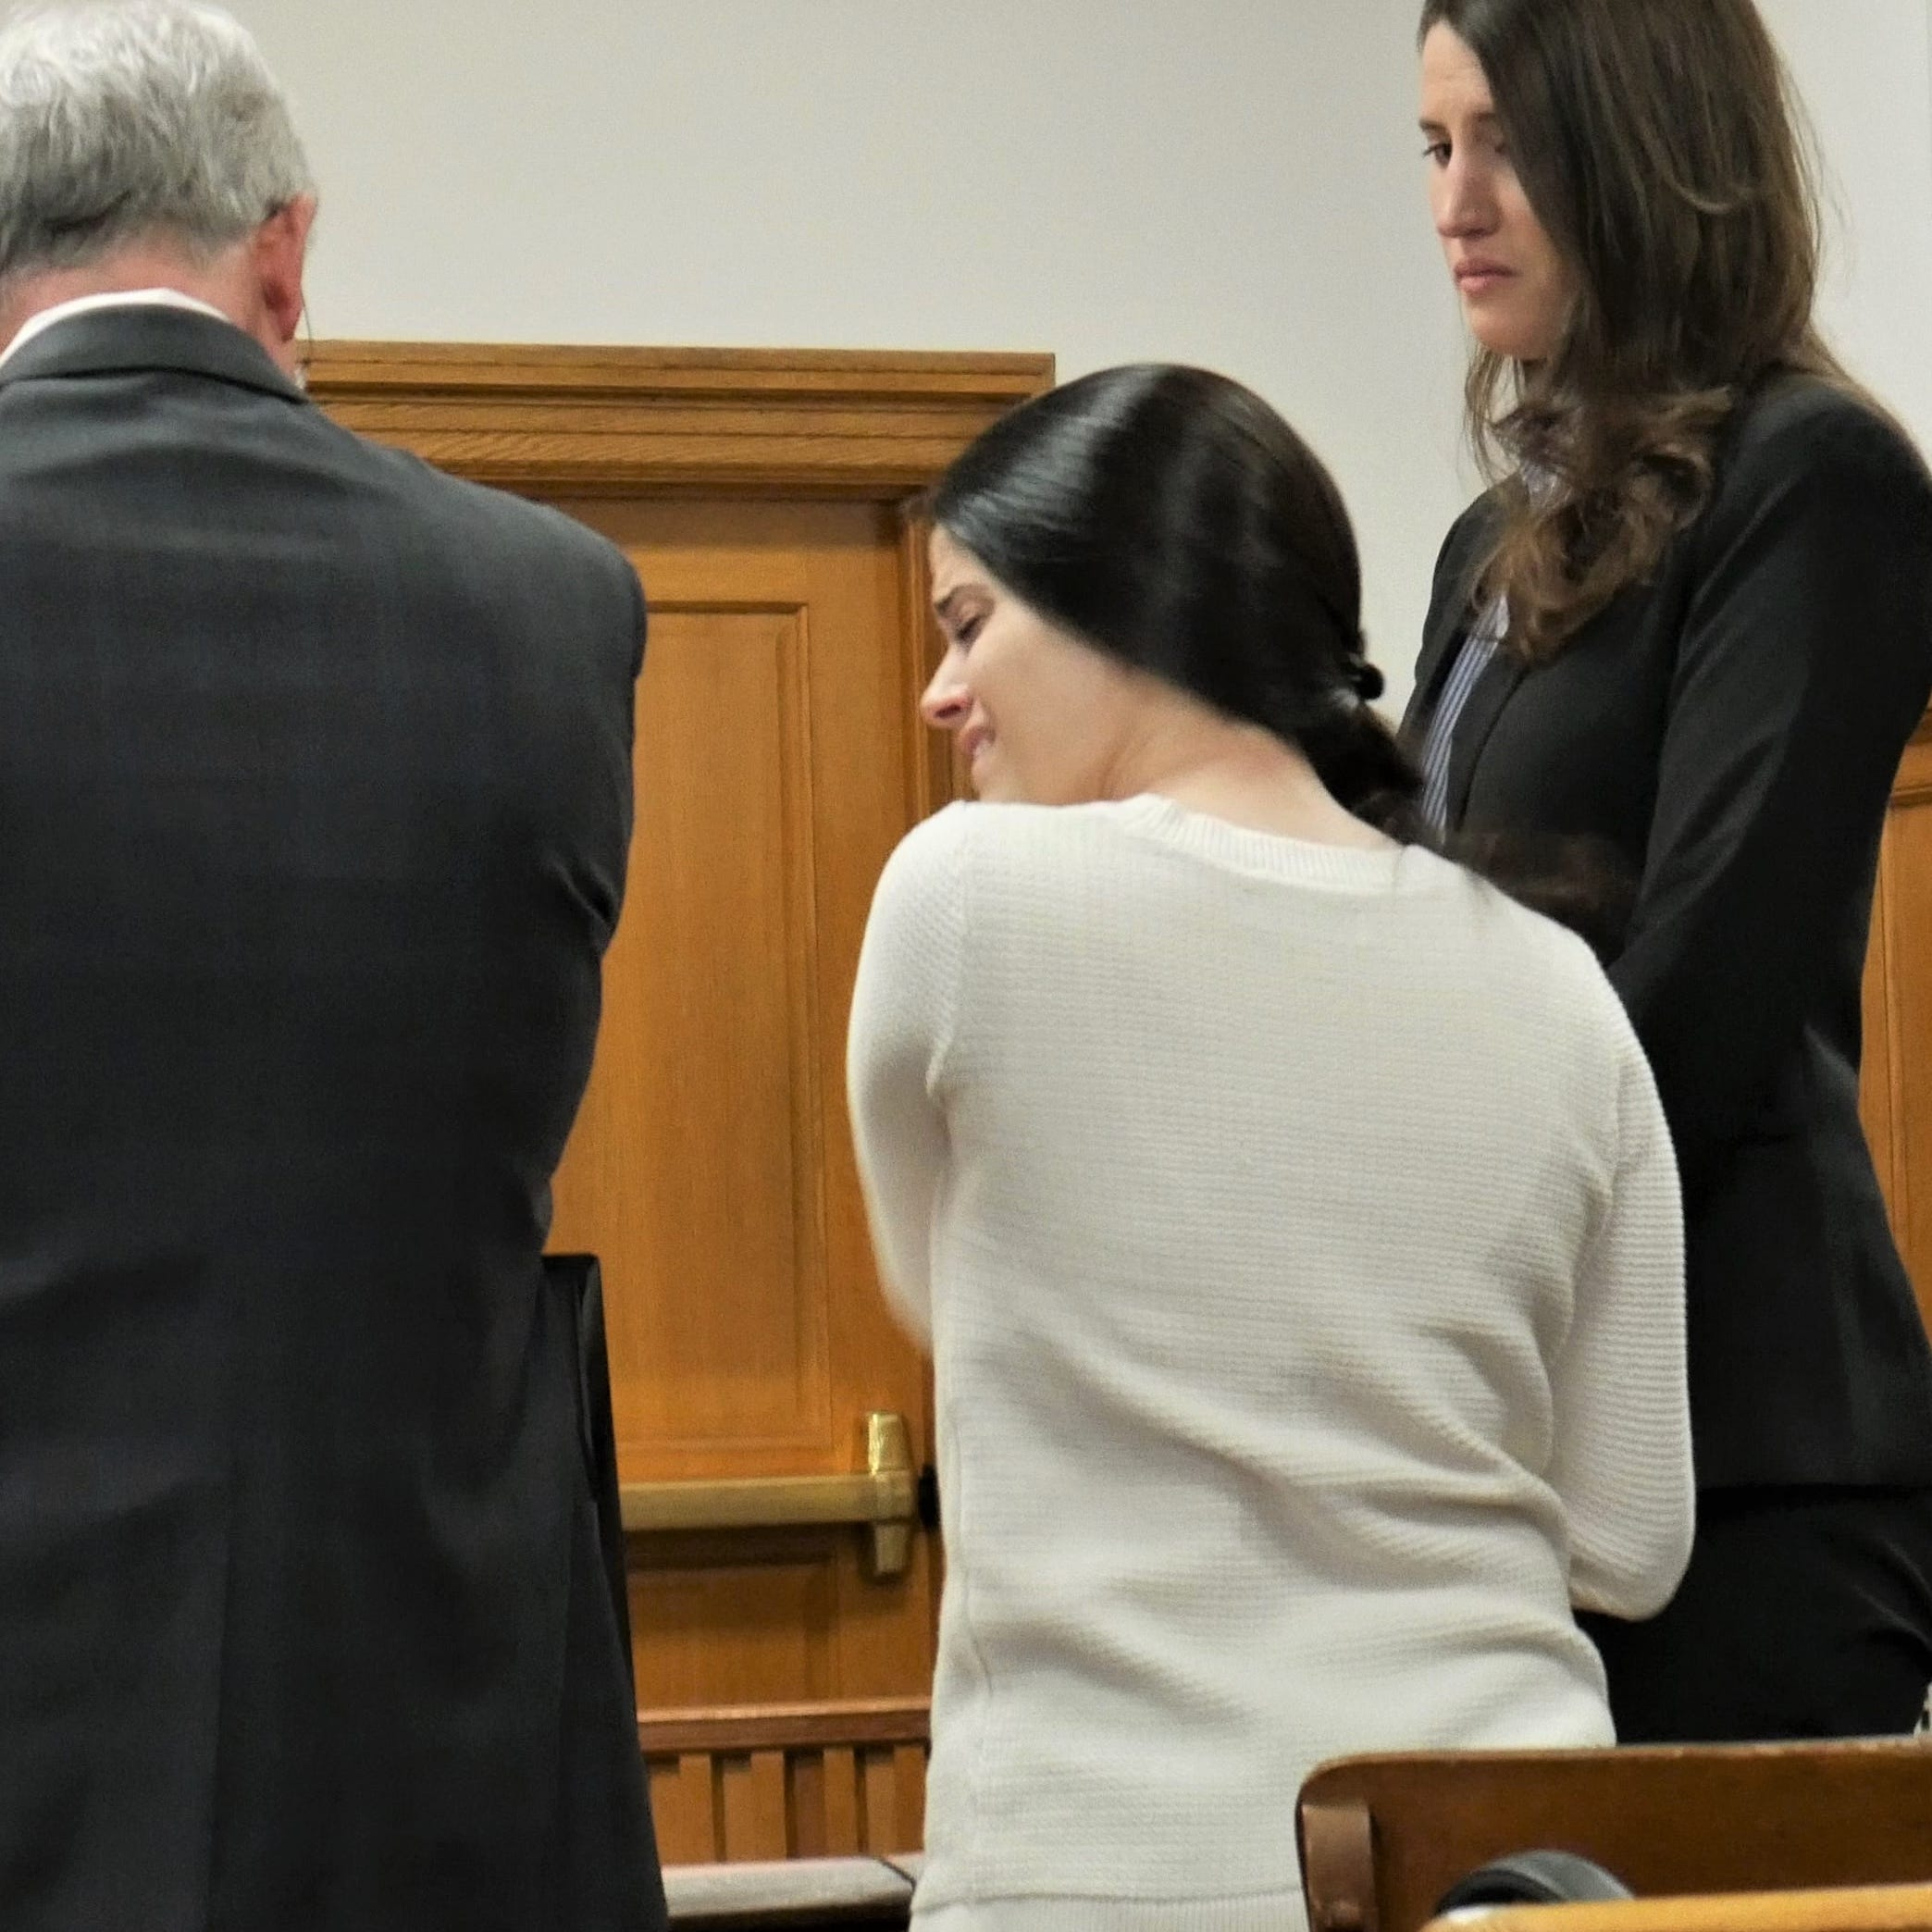 Nicole Addimando (center) stands with members of her defense team and cries as she removes a necklace, after a Dutchess County jury returned a guilty verdict for second-degree murder on April 12, 2019.